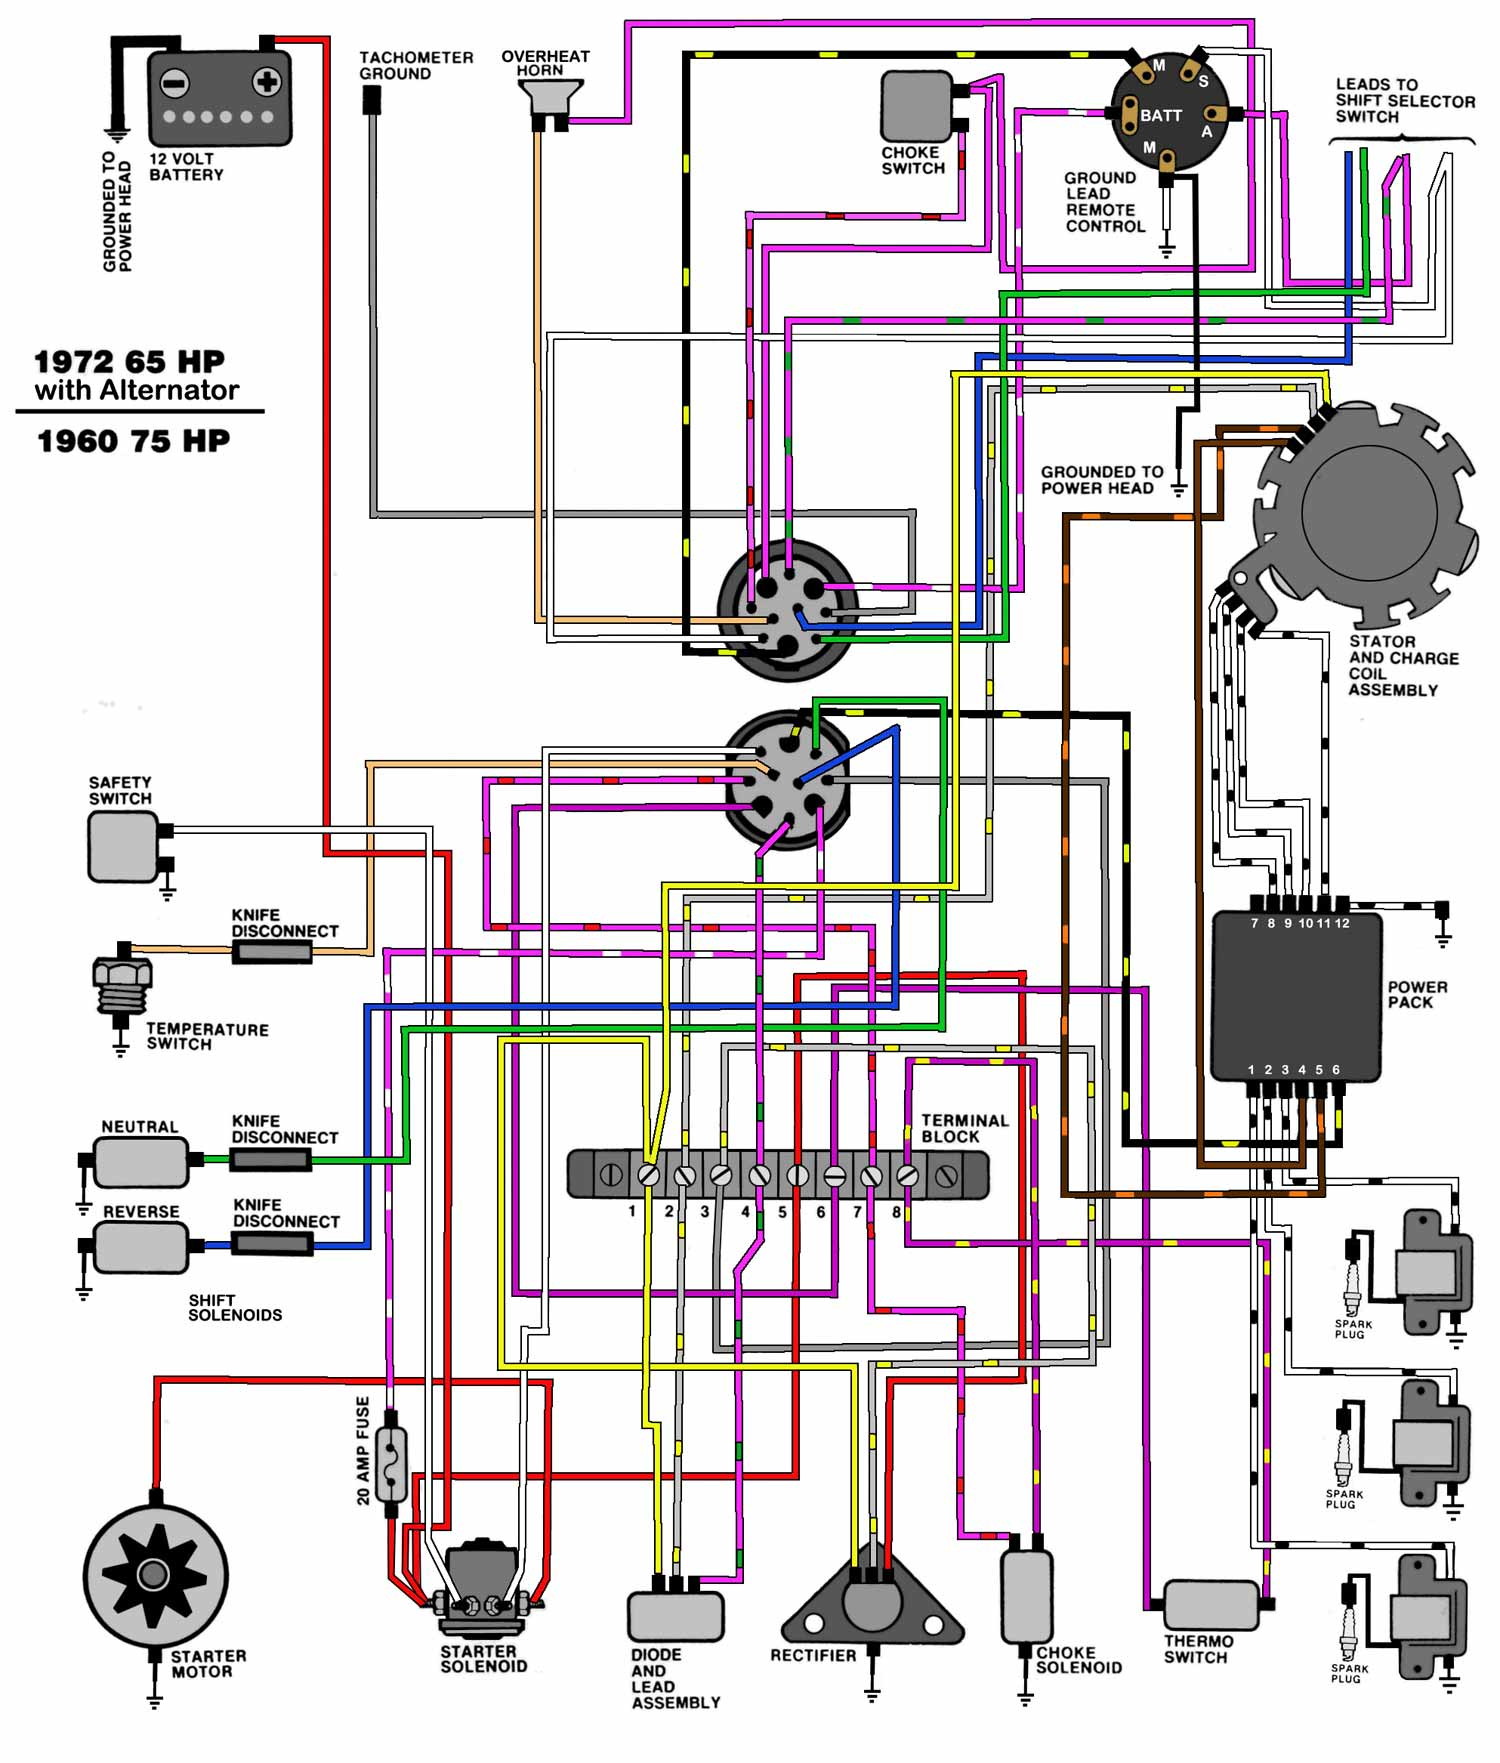 evinrude model 50273c 50 hp wiring diagram 5 17 ulrich temme de \u2022ignition wire diagram for 1975 johnson evinrude 50 hp outboard rh 11 code3e co johnson outboard ignition switch wiring 50 hp evinrude service manual